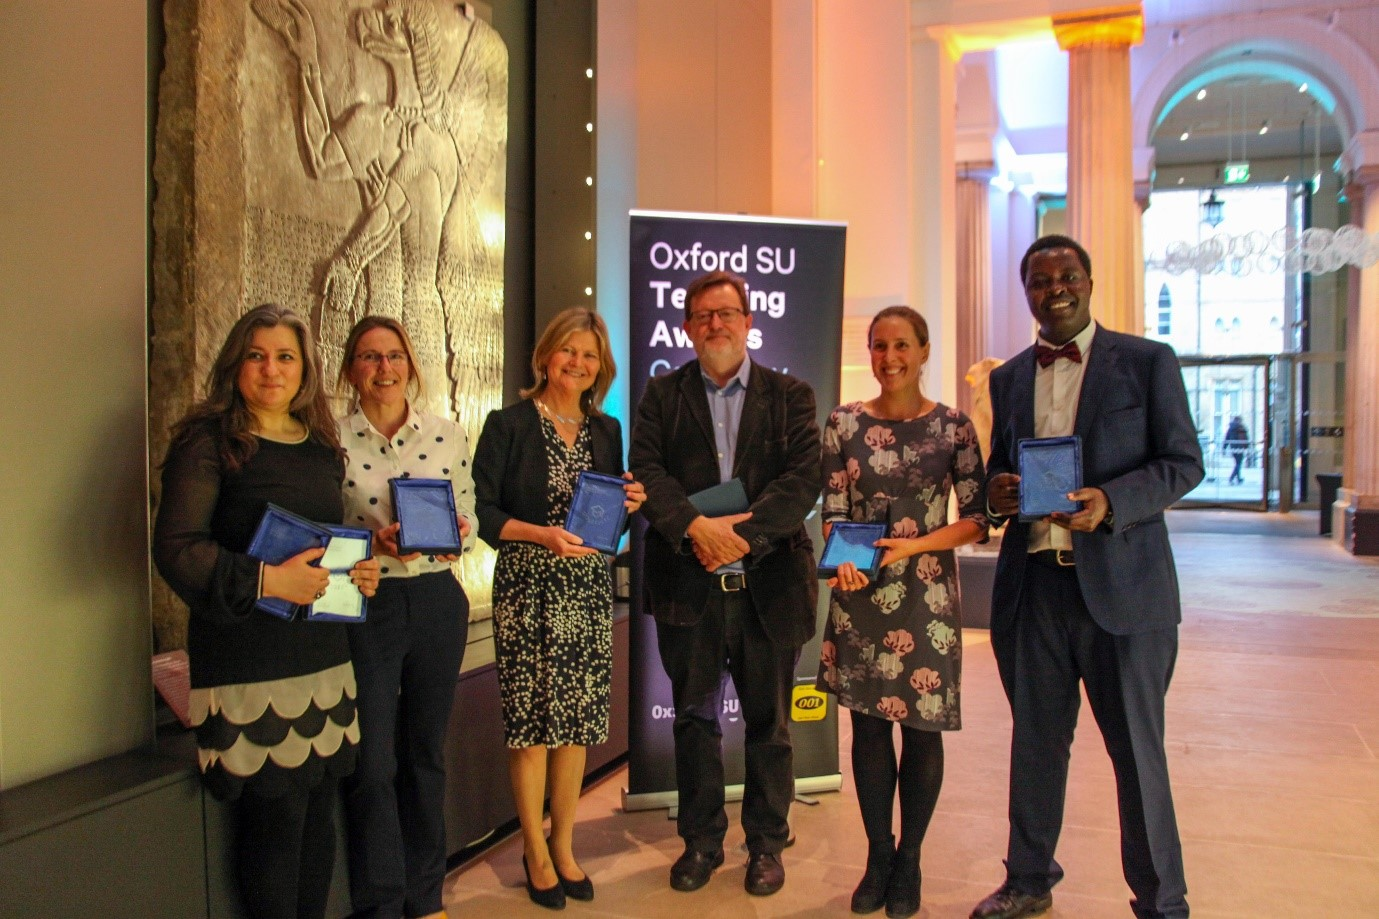 Winners of the Oxford Students' Union Annual Teaching Awards 2019 holding their awards in the Ashmolean foyer in front of a teaching awards banner